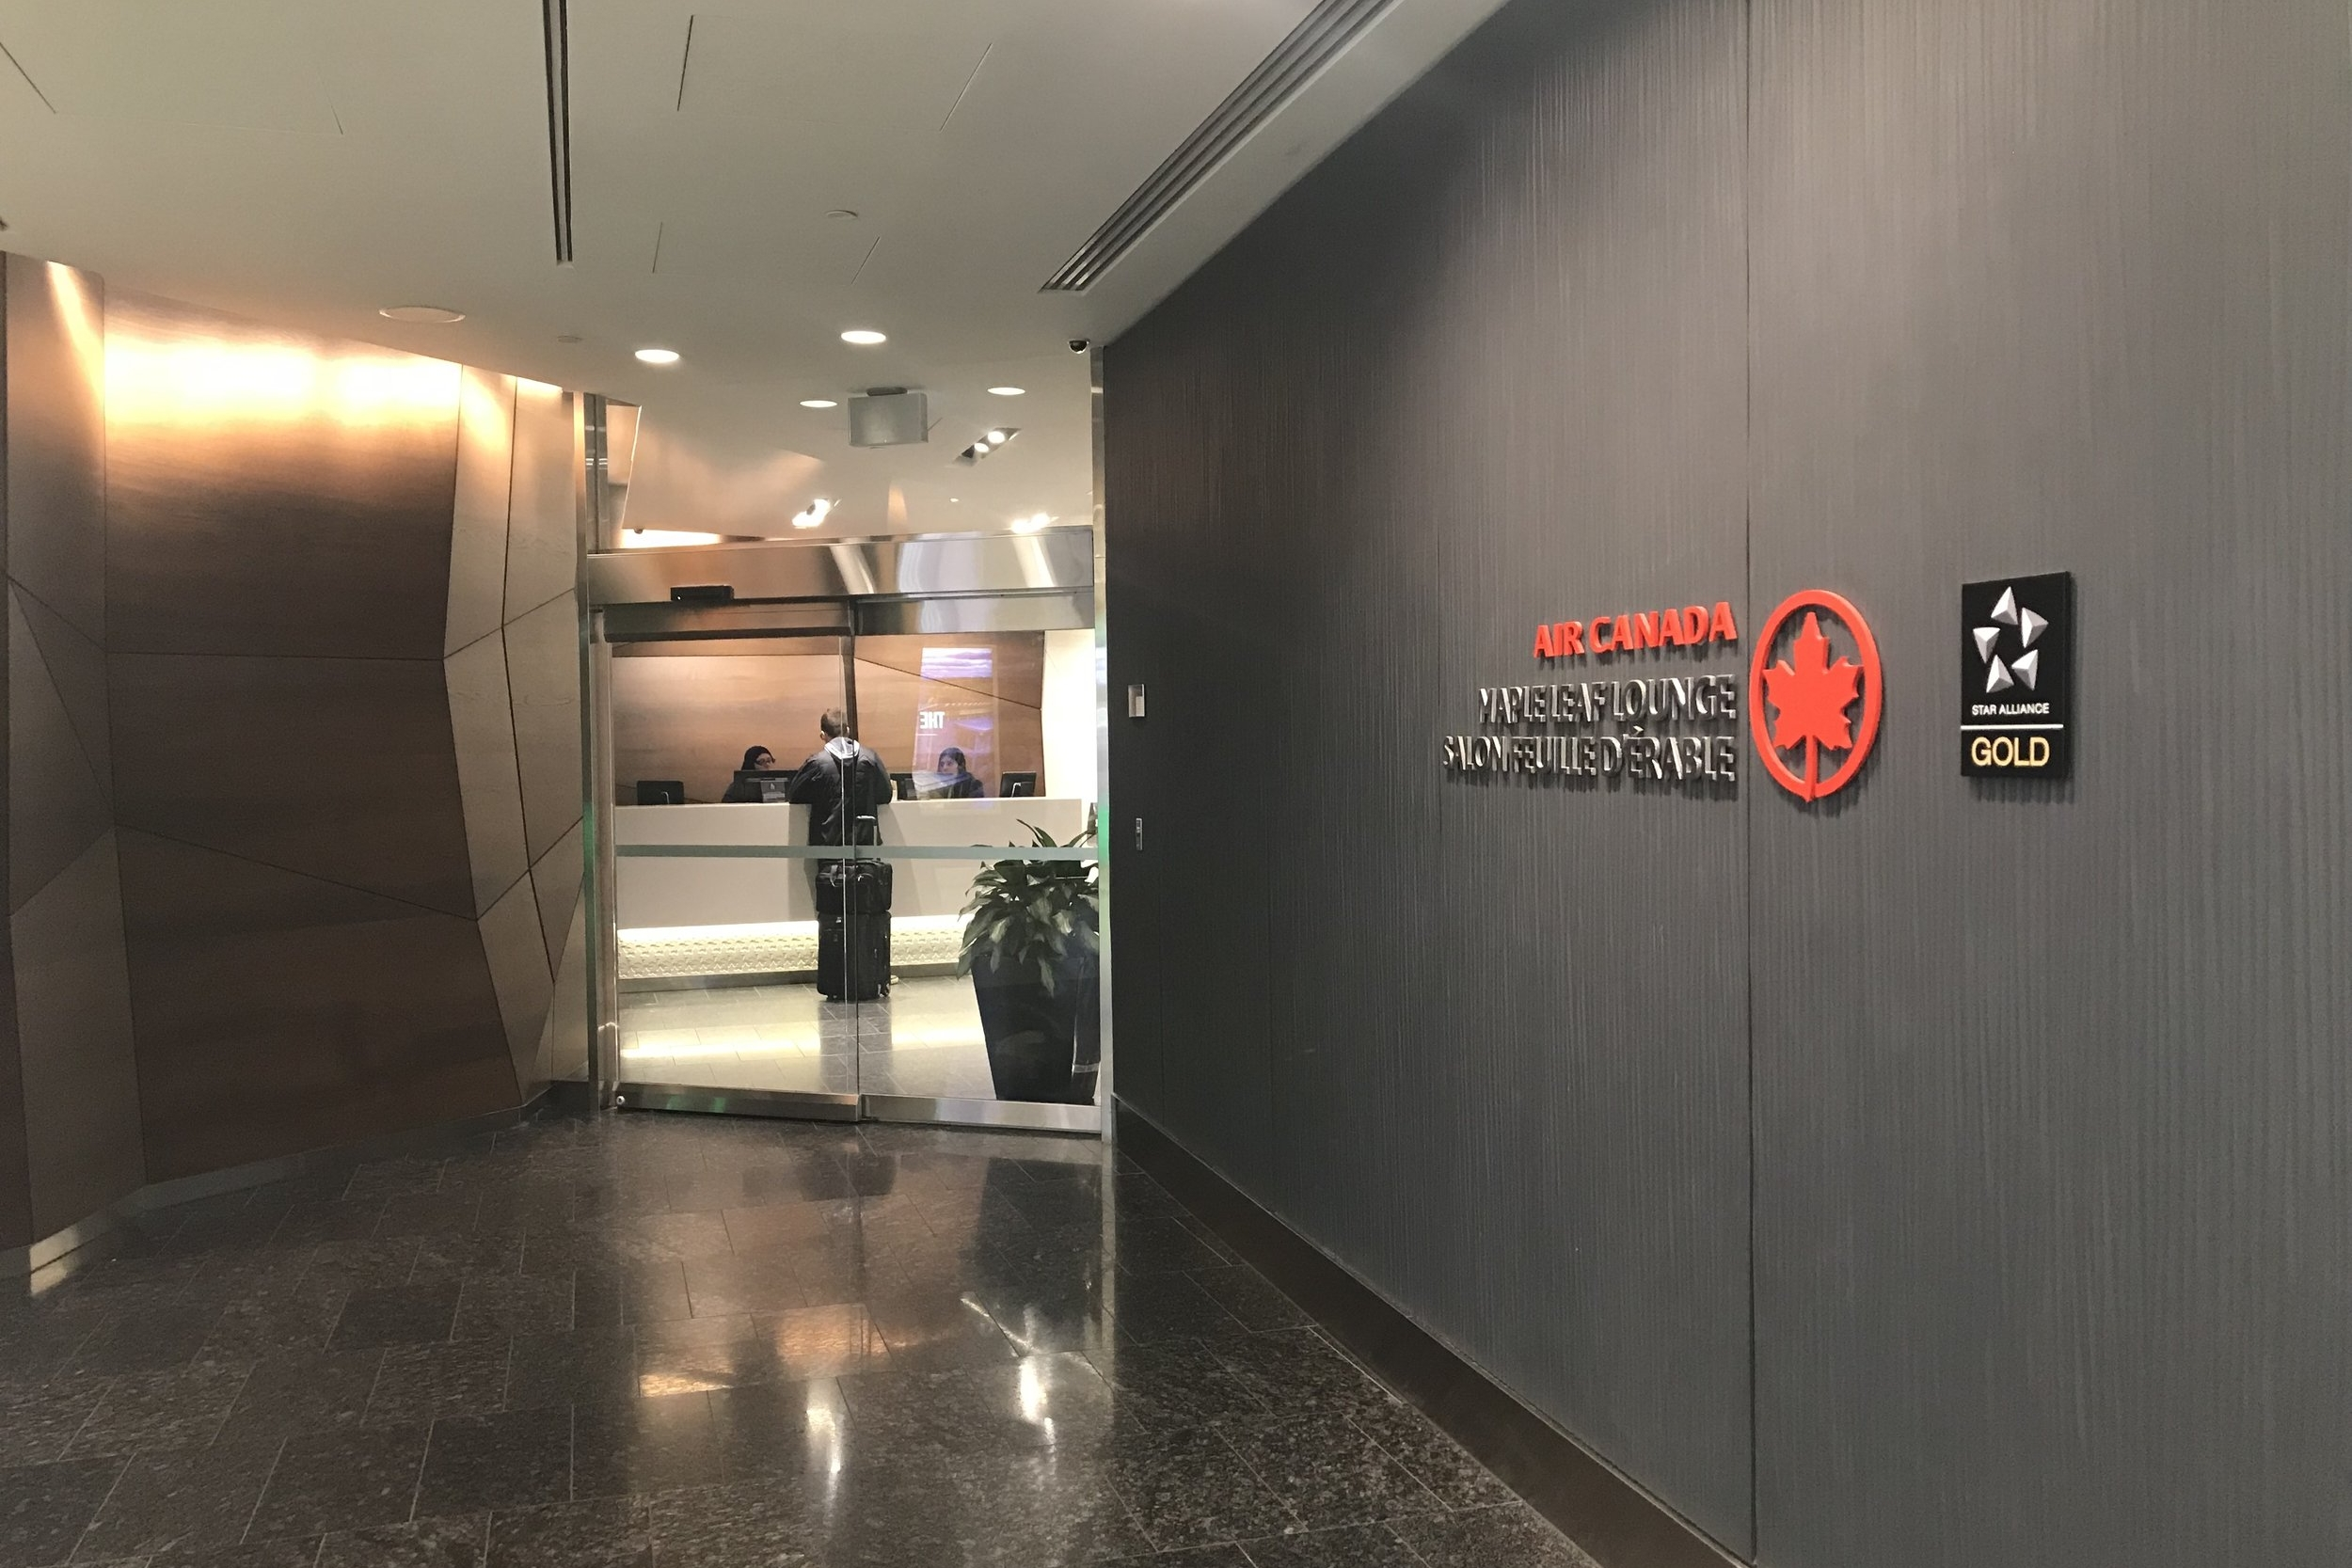 Air Canada Maple Leaf Lounge Calgary (Domestic) – Entrance